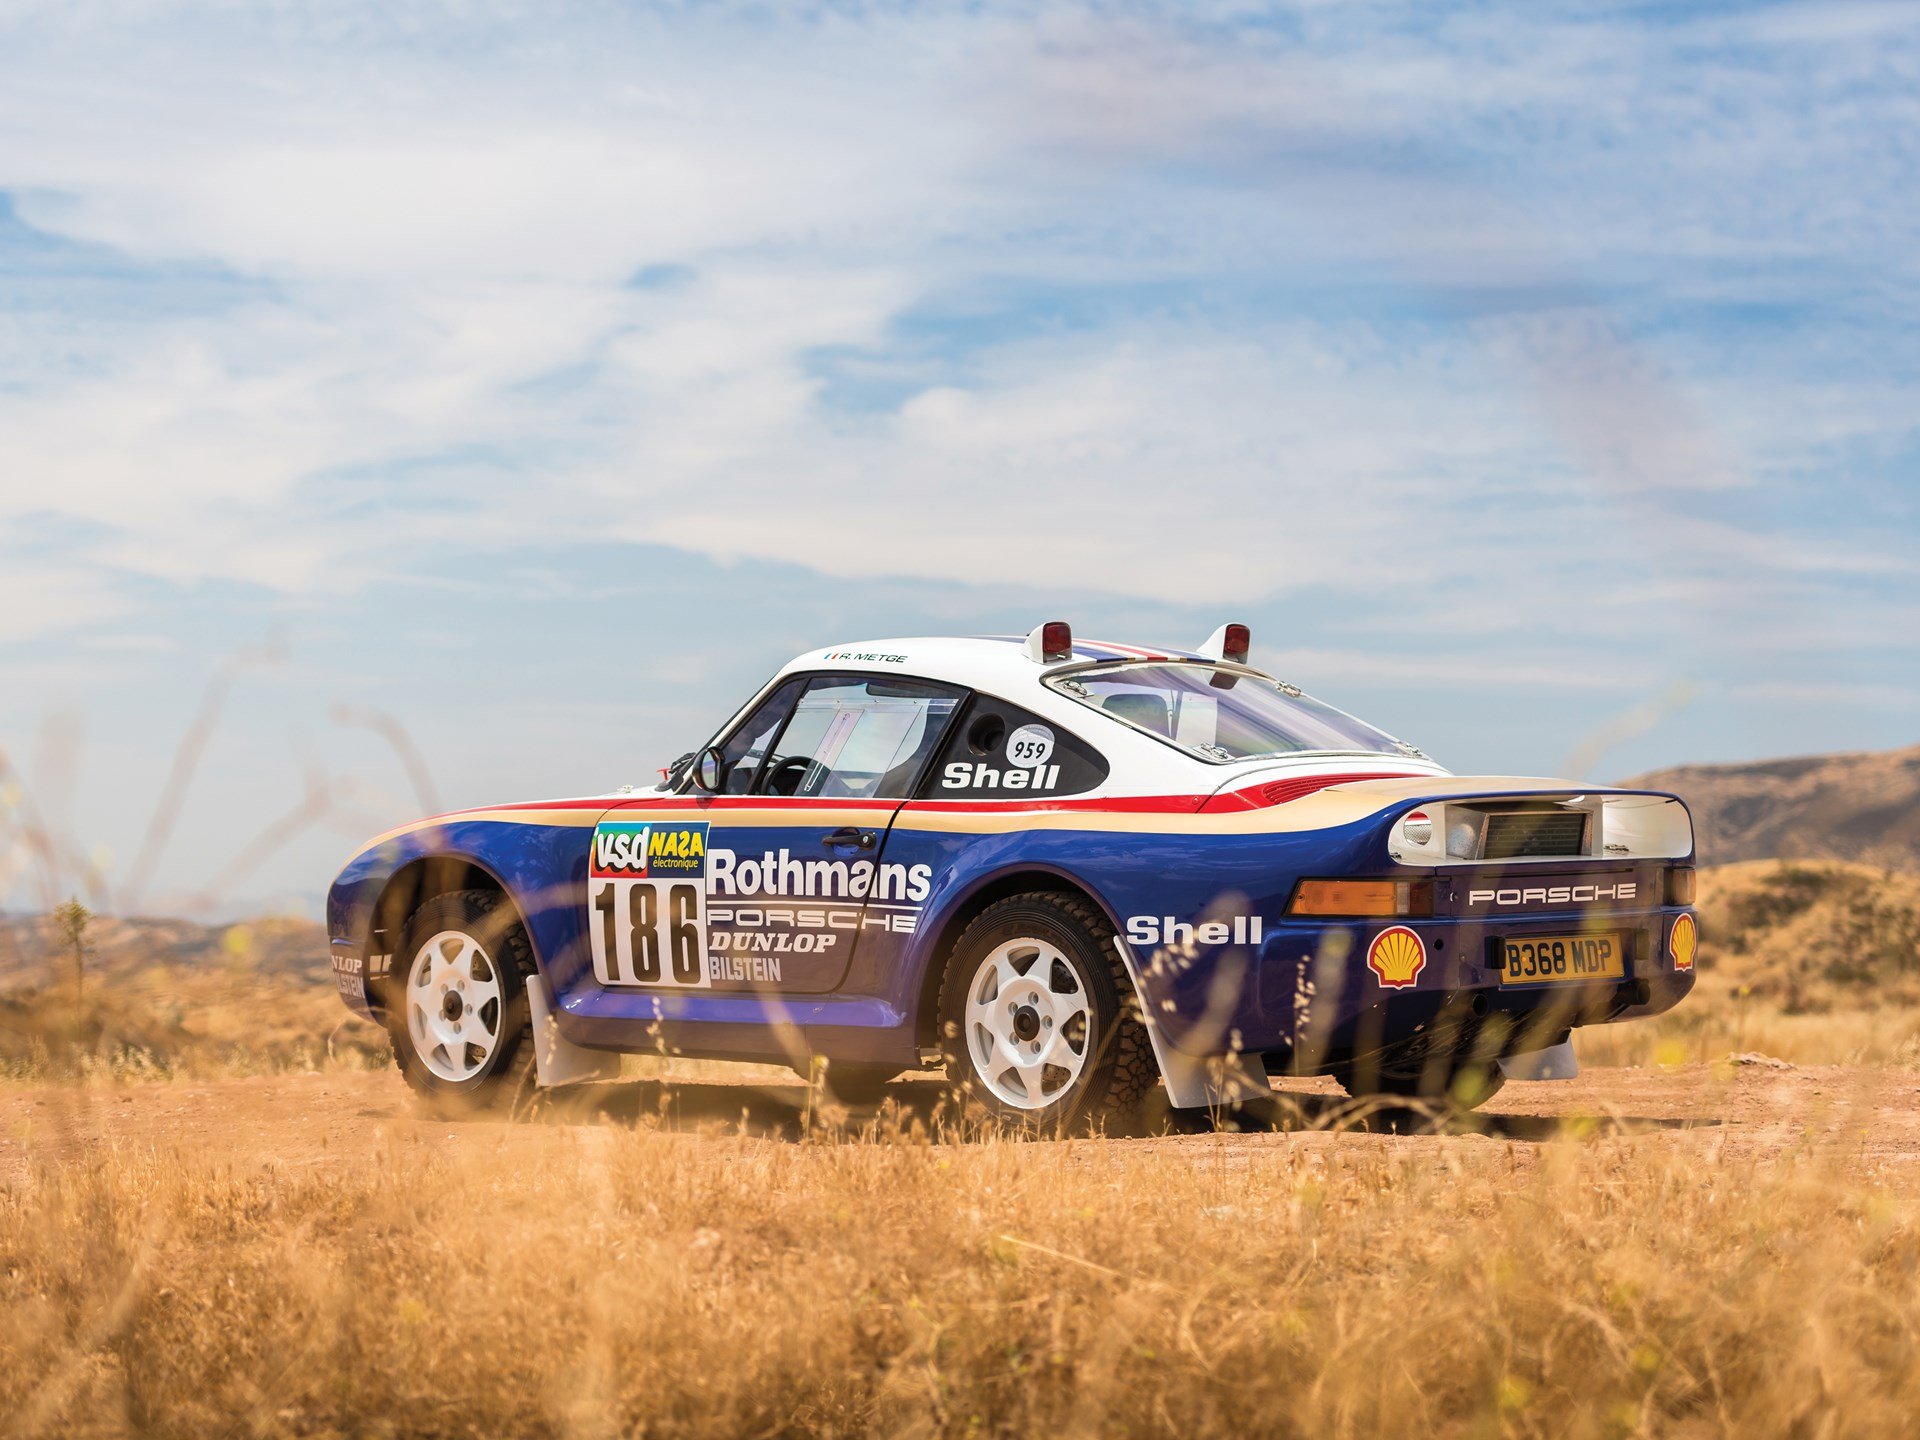 1985 Porsche 959 Paris-Dakar rear 3/4 long grass